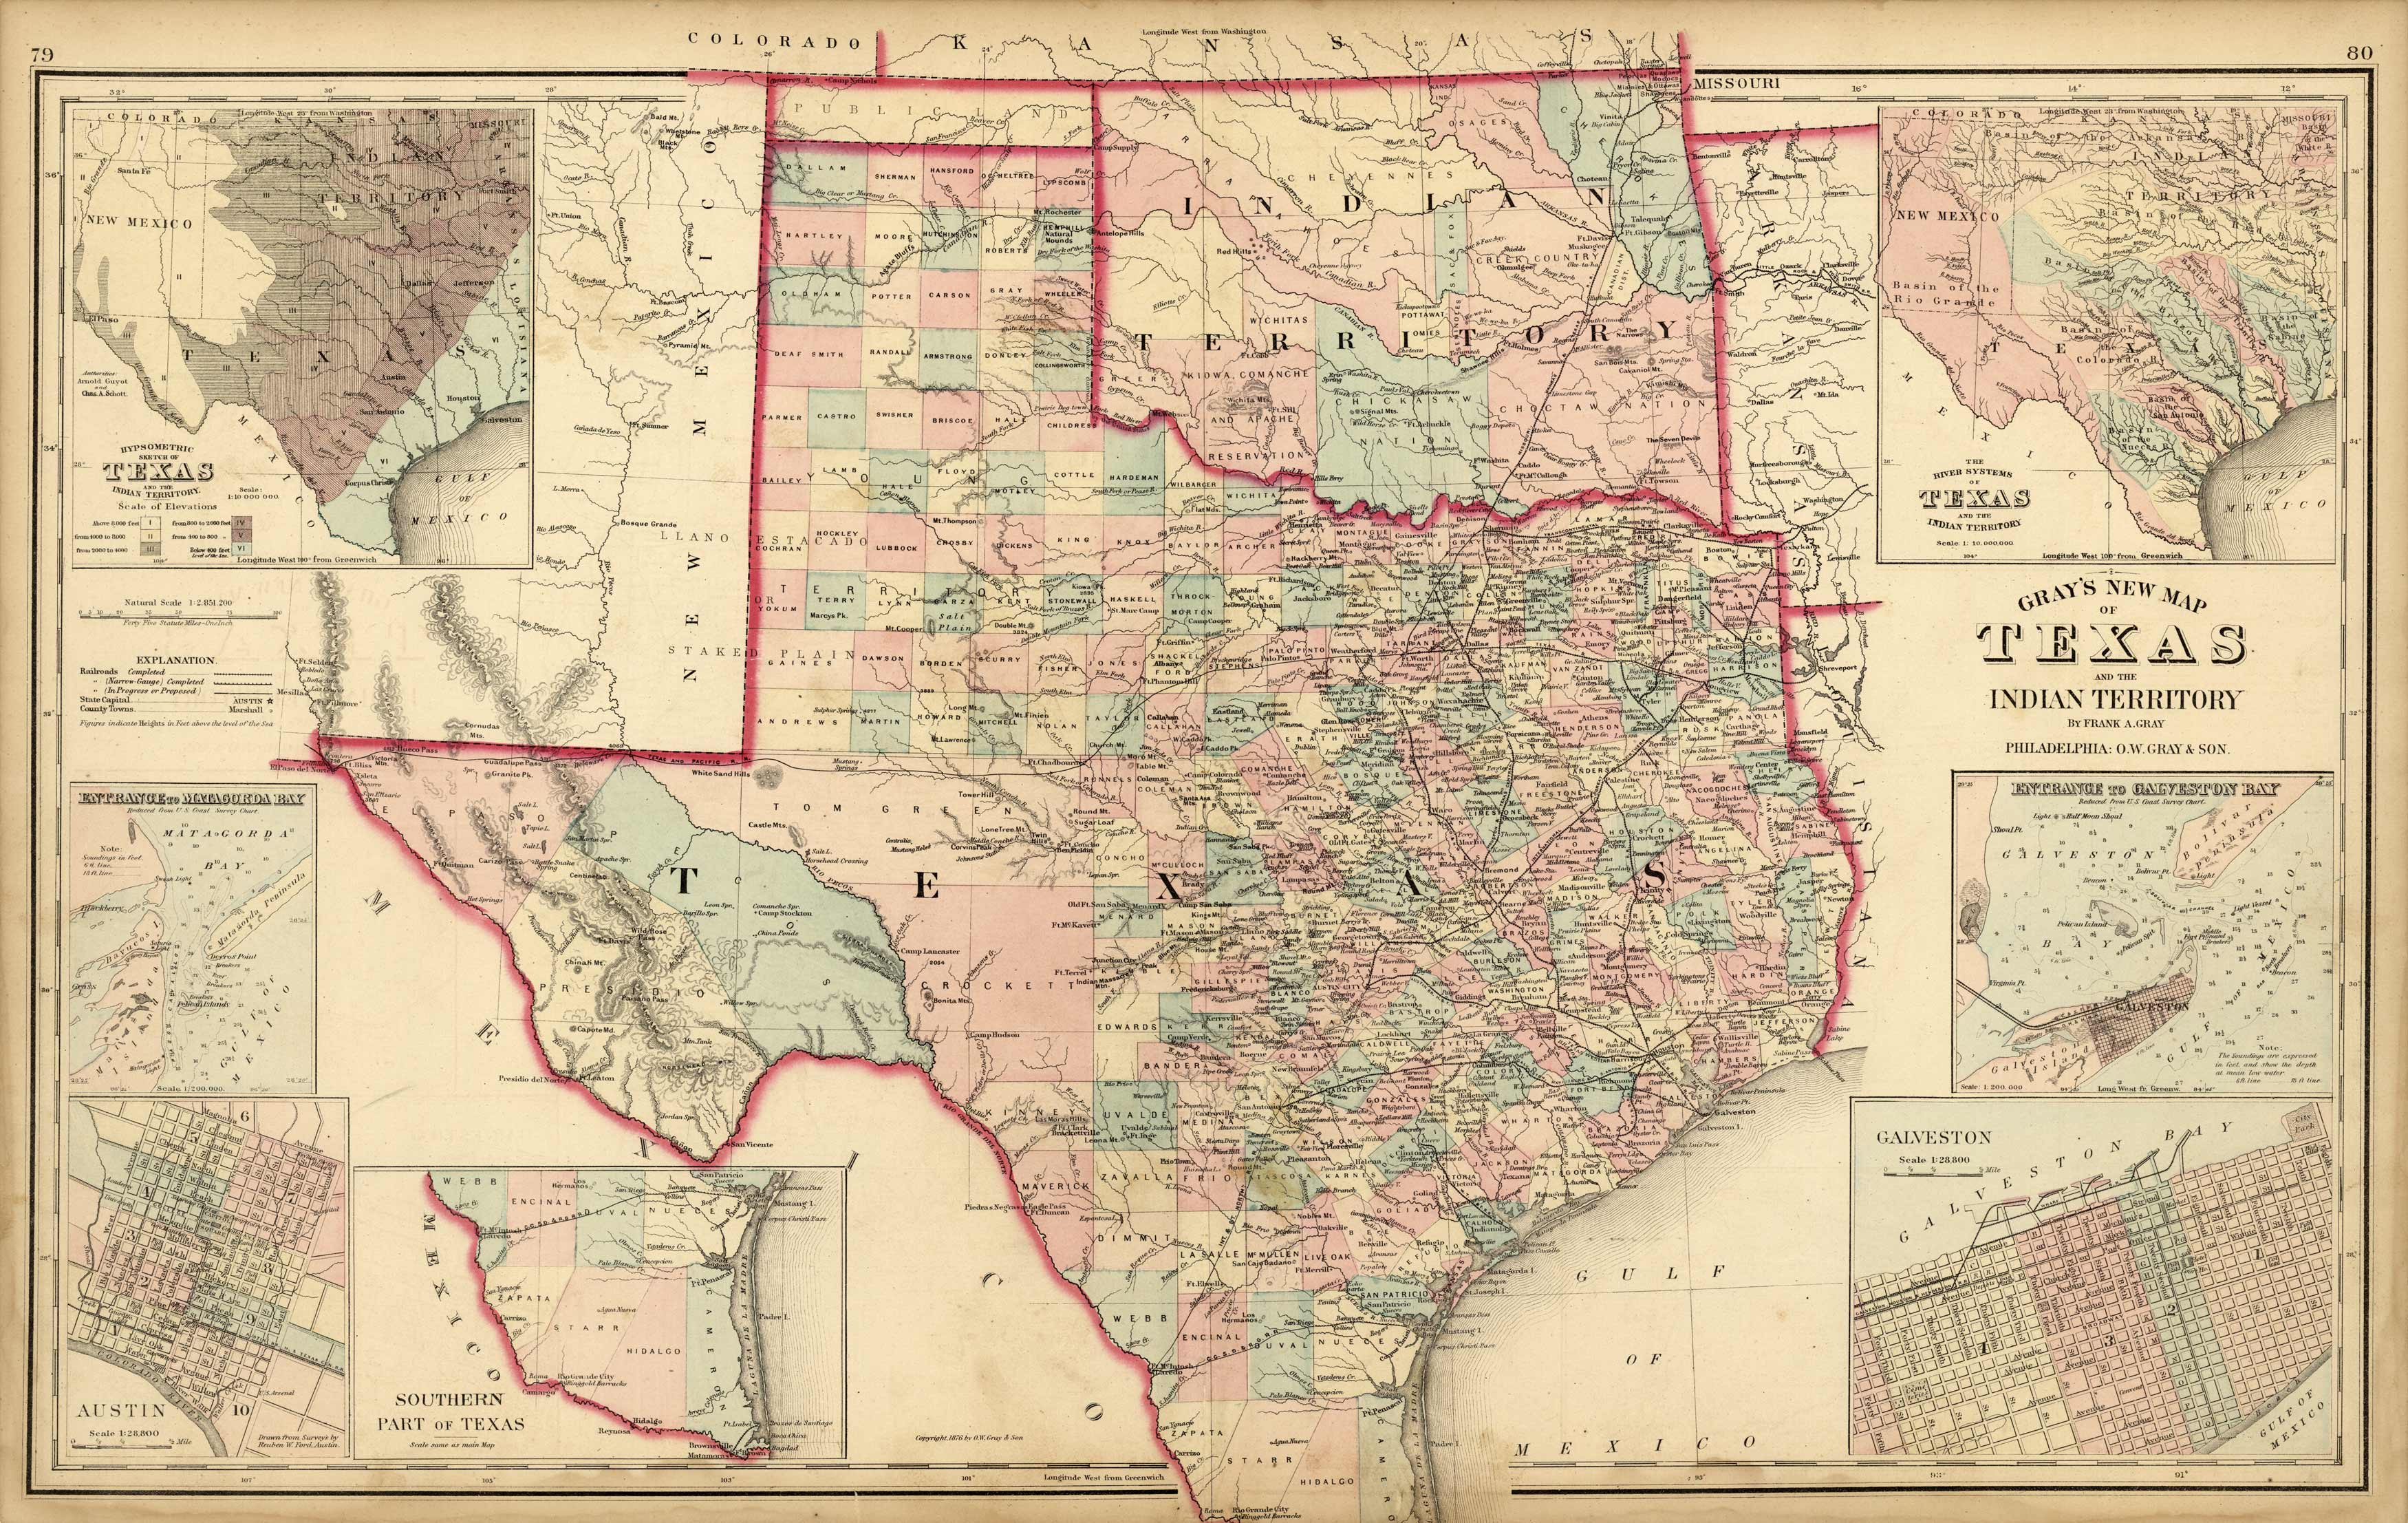 Grays New Map of Texas and the Indian Territory (Oklahoma) with insets of Entrance to Matagorda Bay